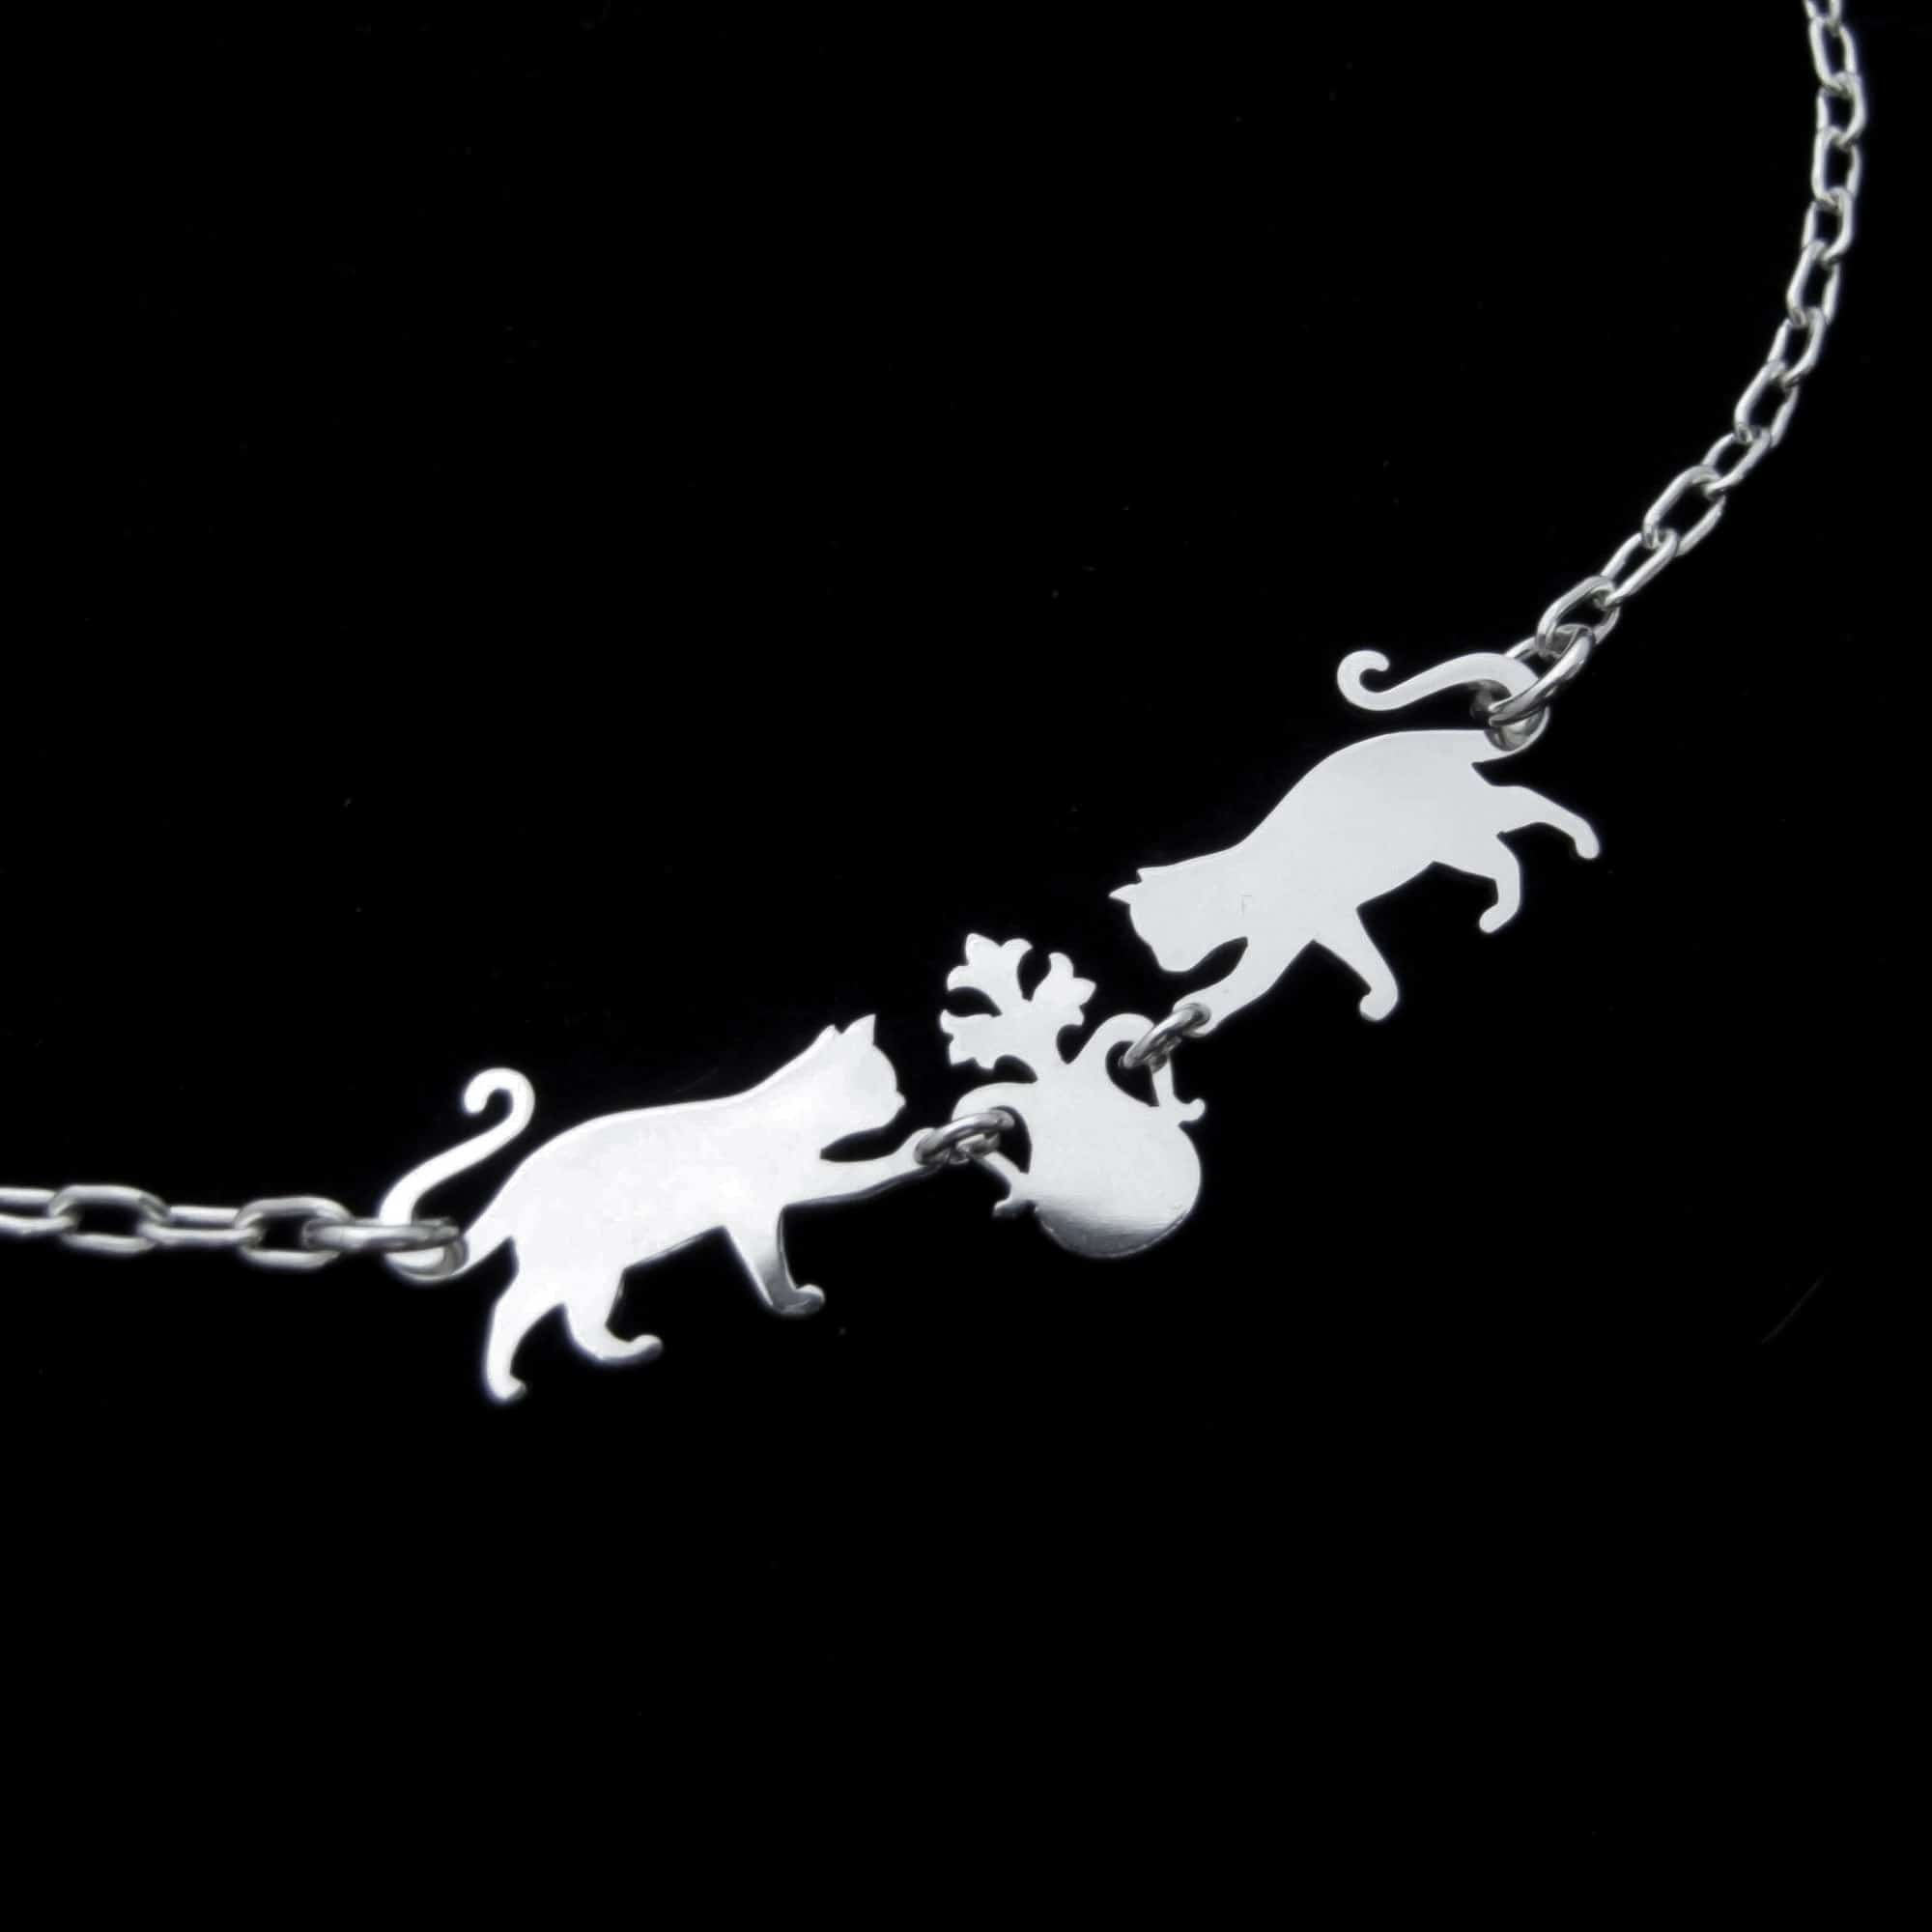 Cats Vs Plant – Silver Chain Choker Necklace By Skadi Jewellery Design